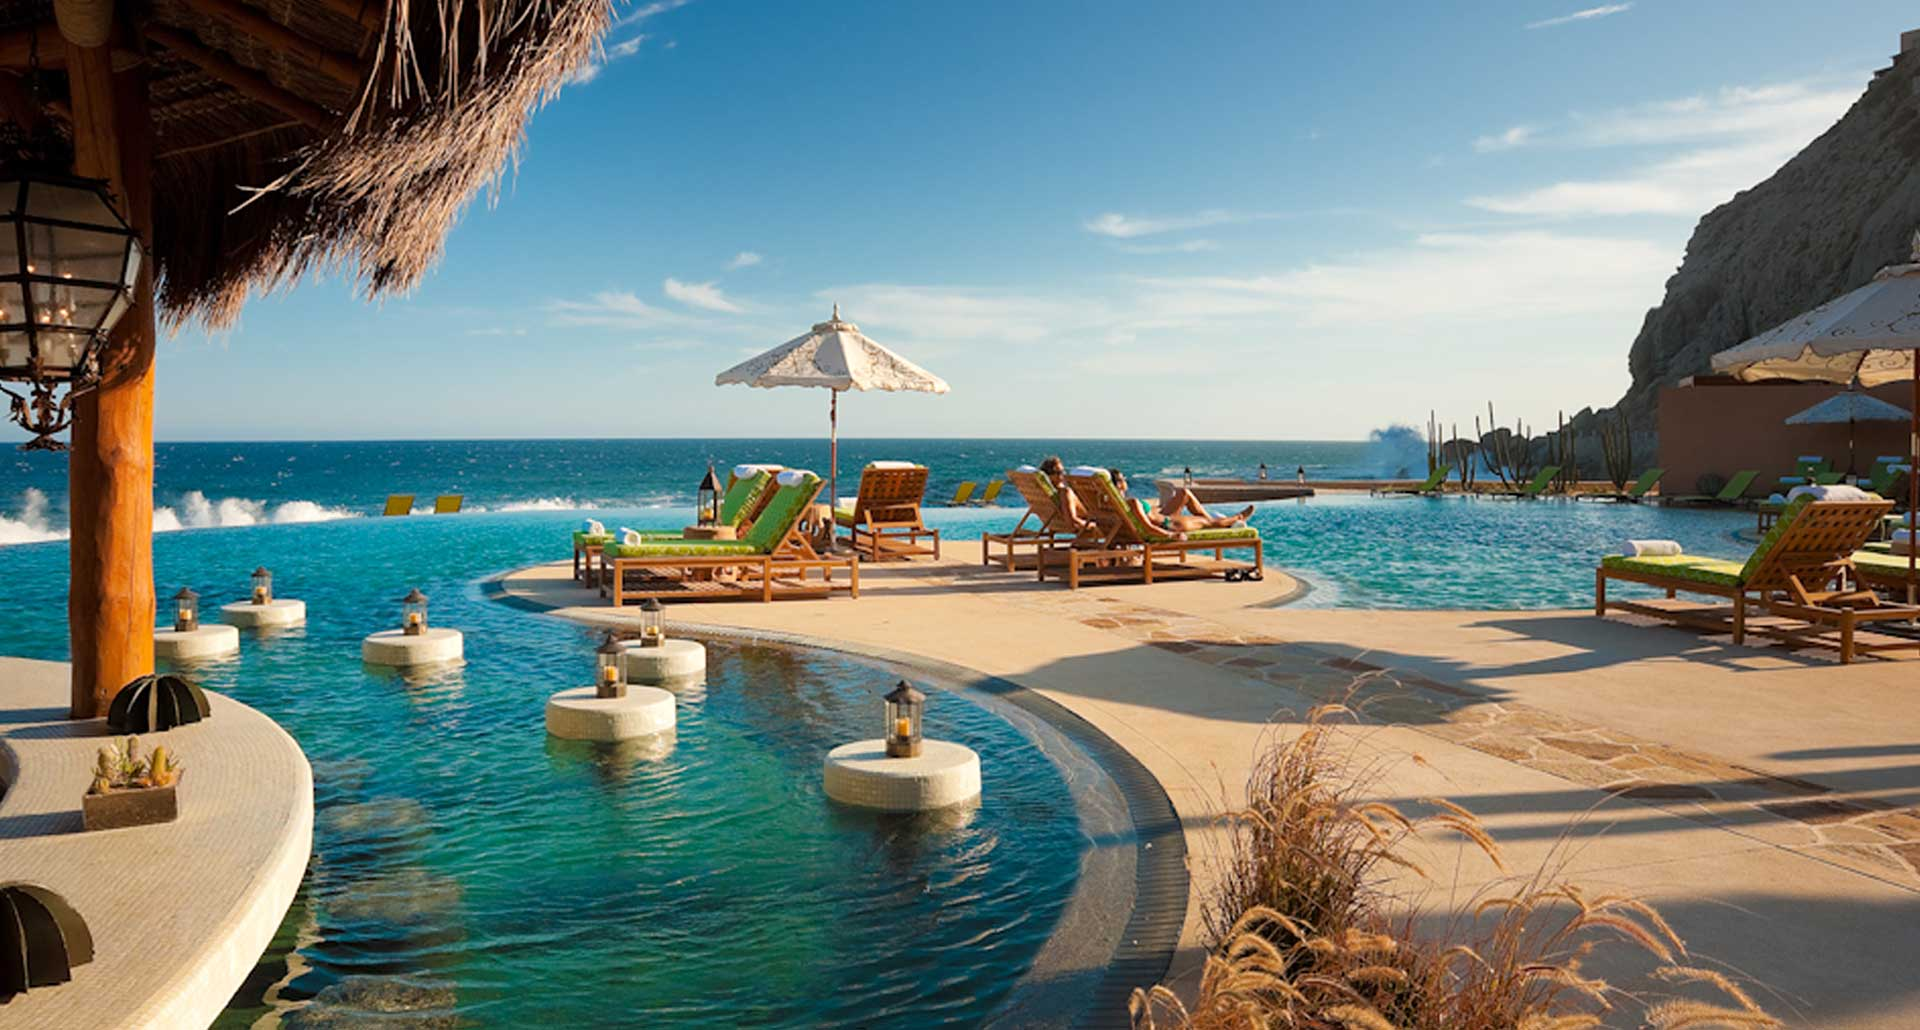 The Resort at Pedregal - best hotel pool in Baja, Mexico